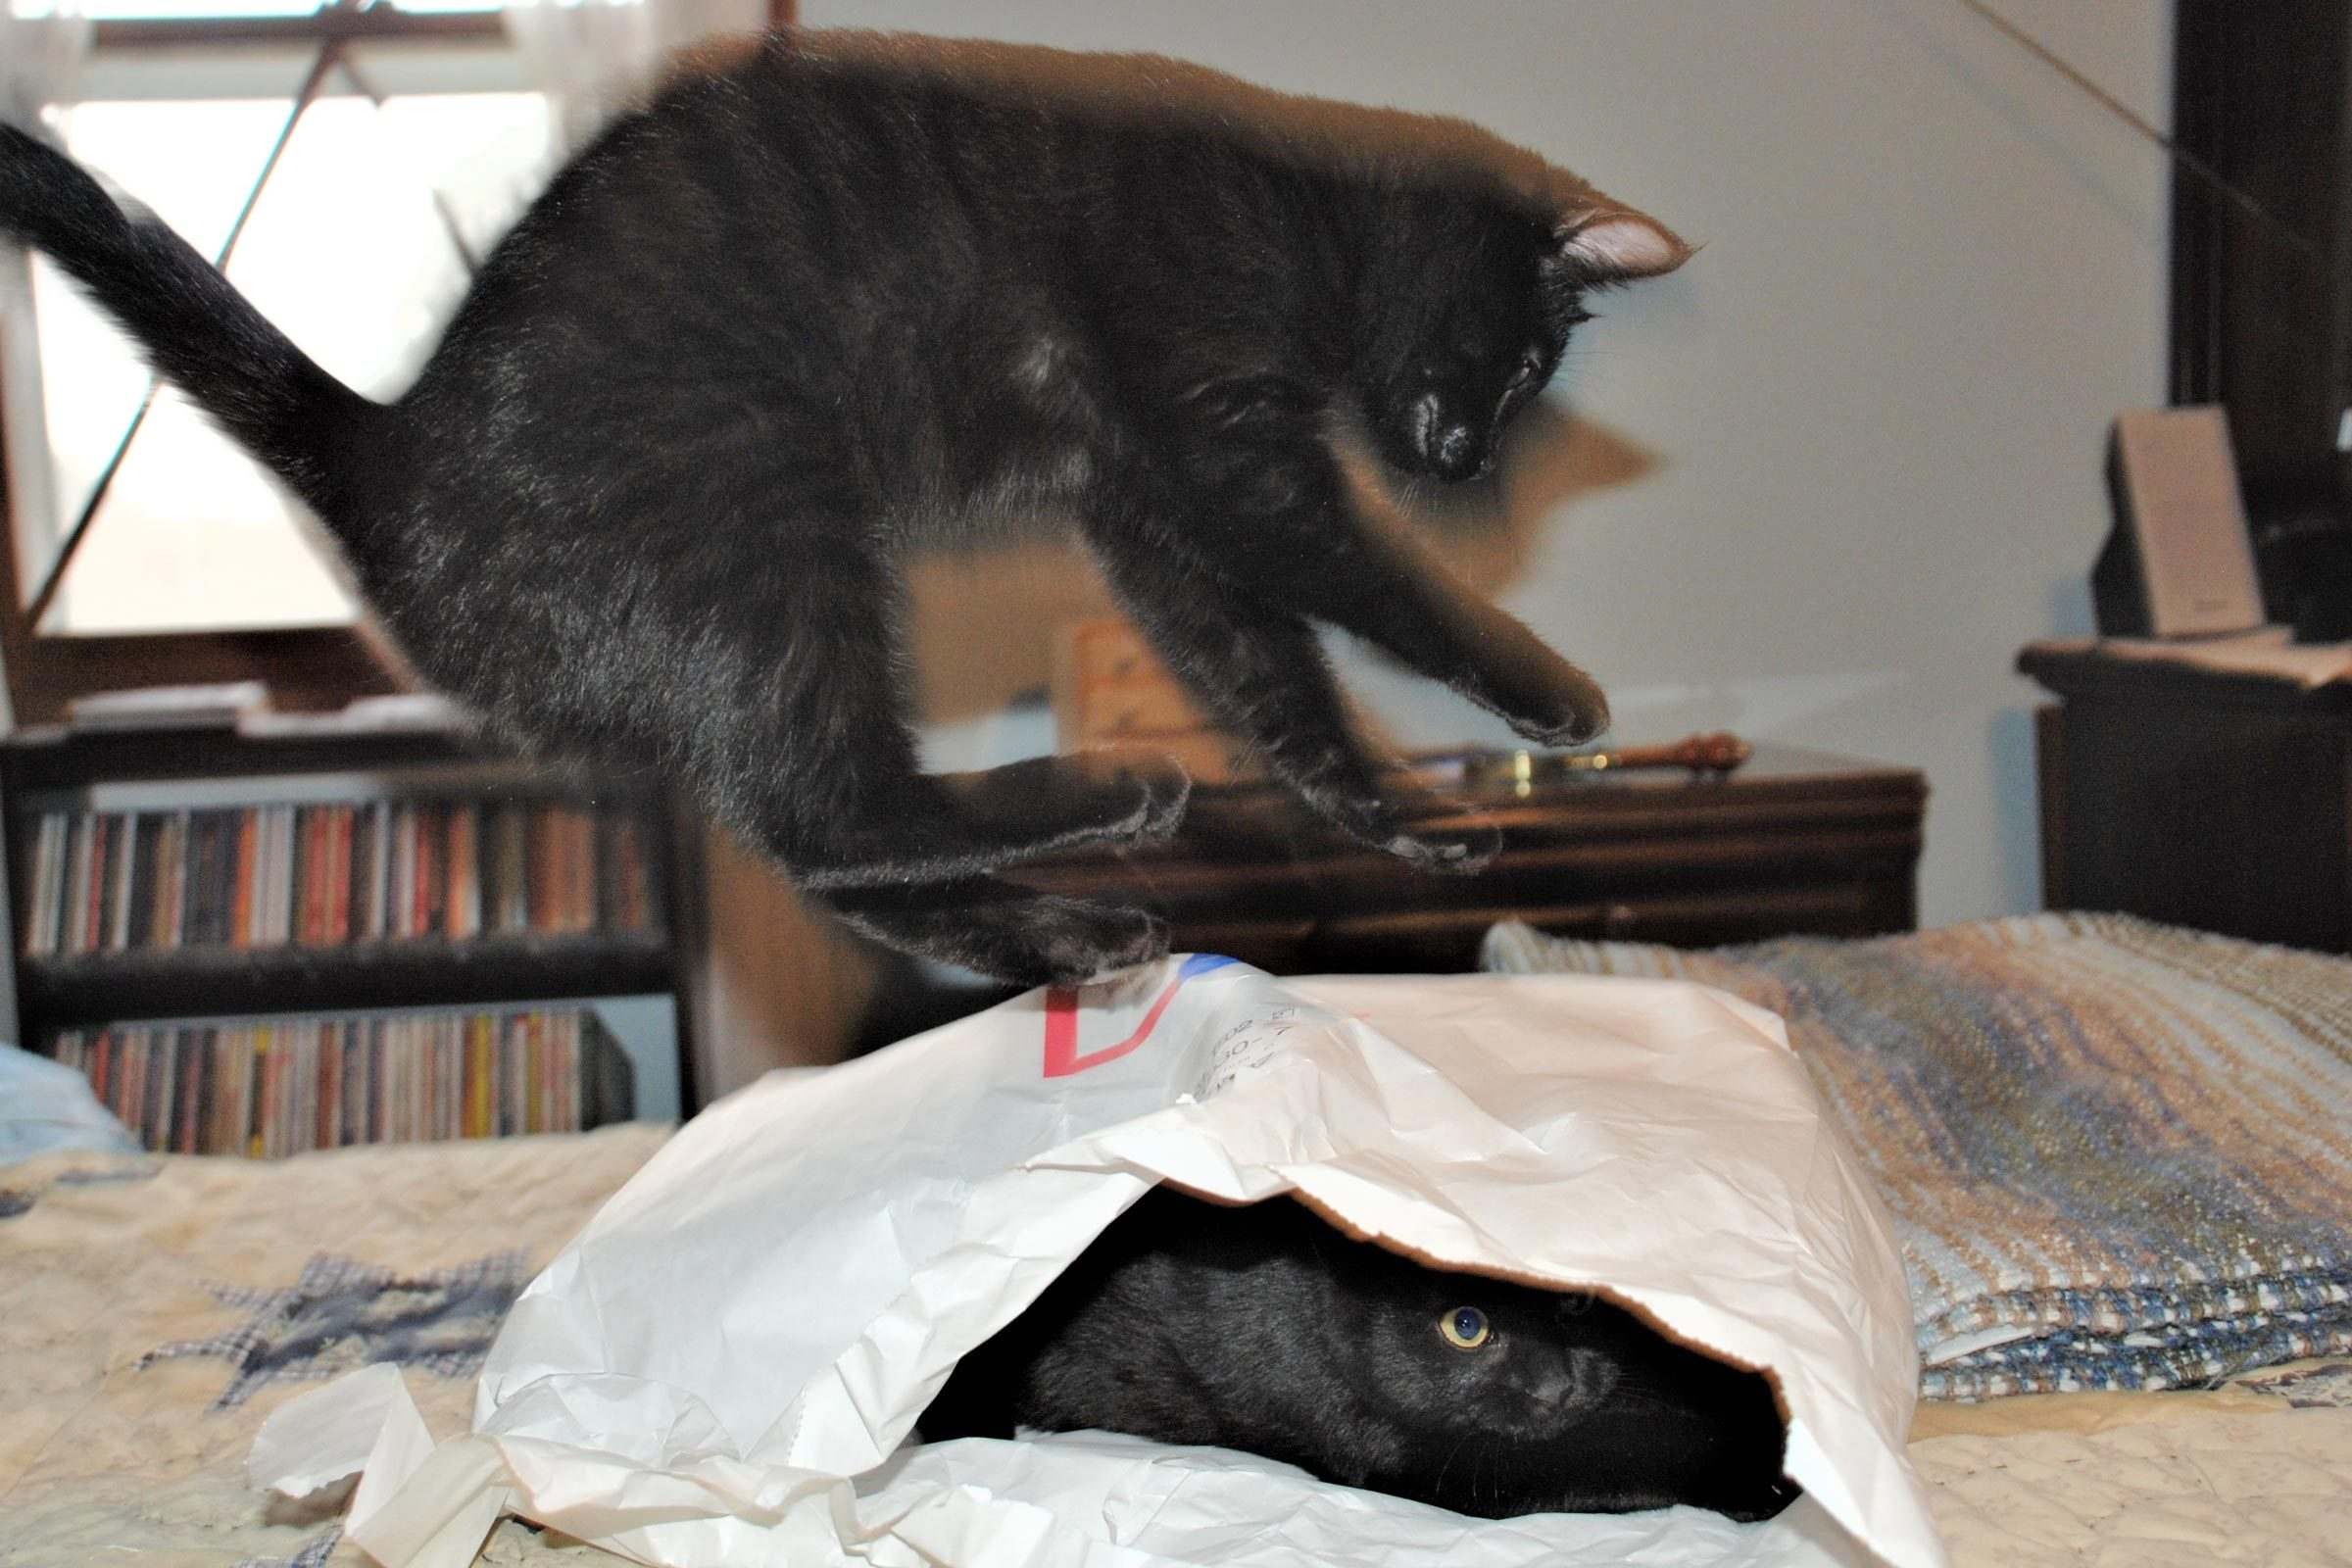 a cat mid air about to land on another cat who is iside a large envelope